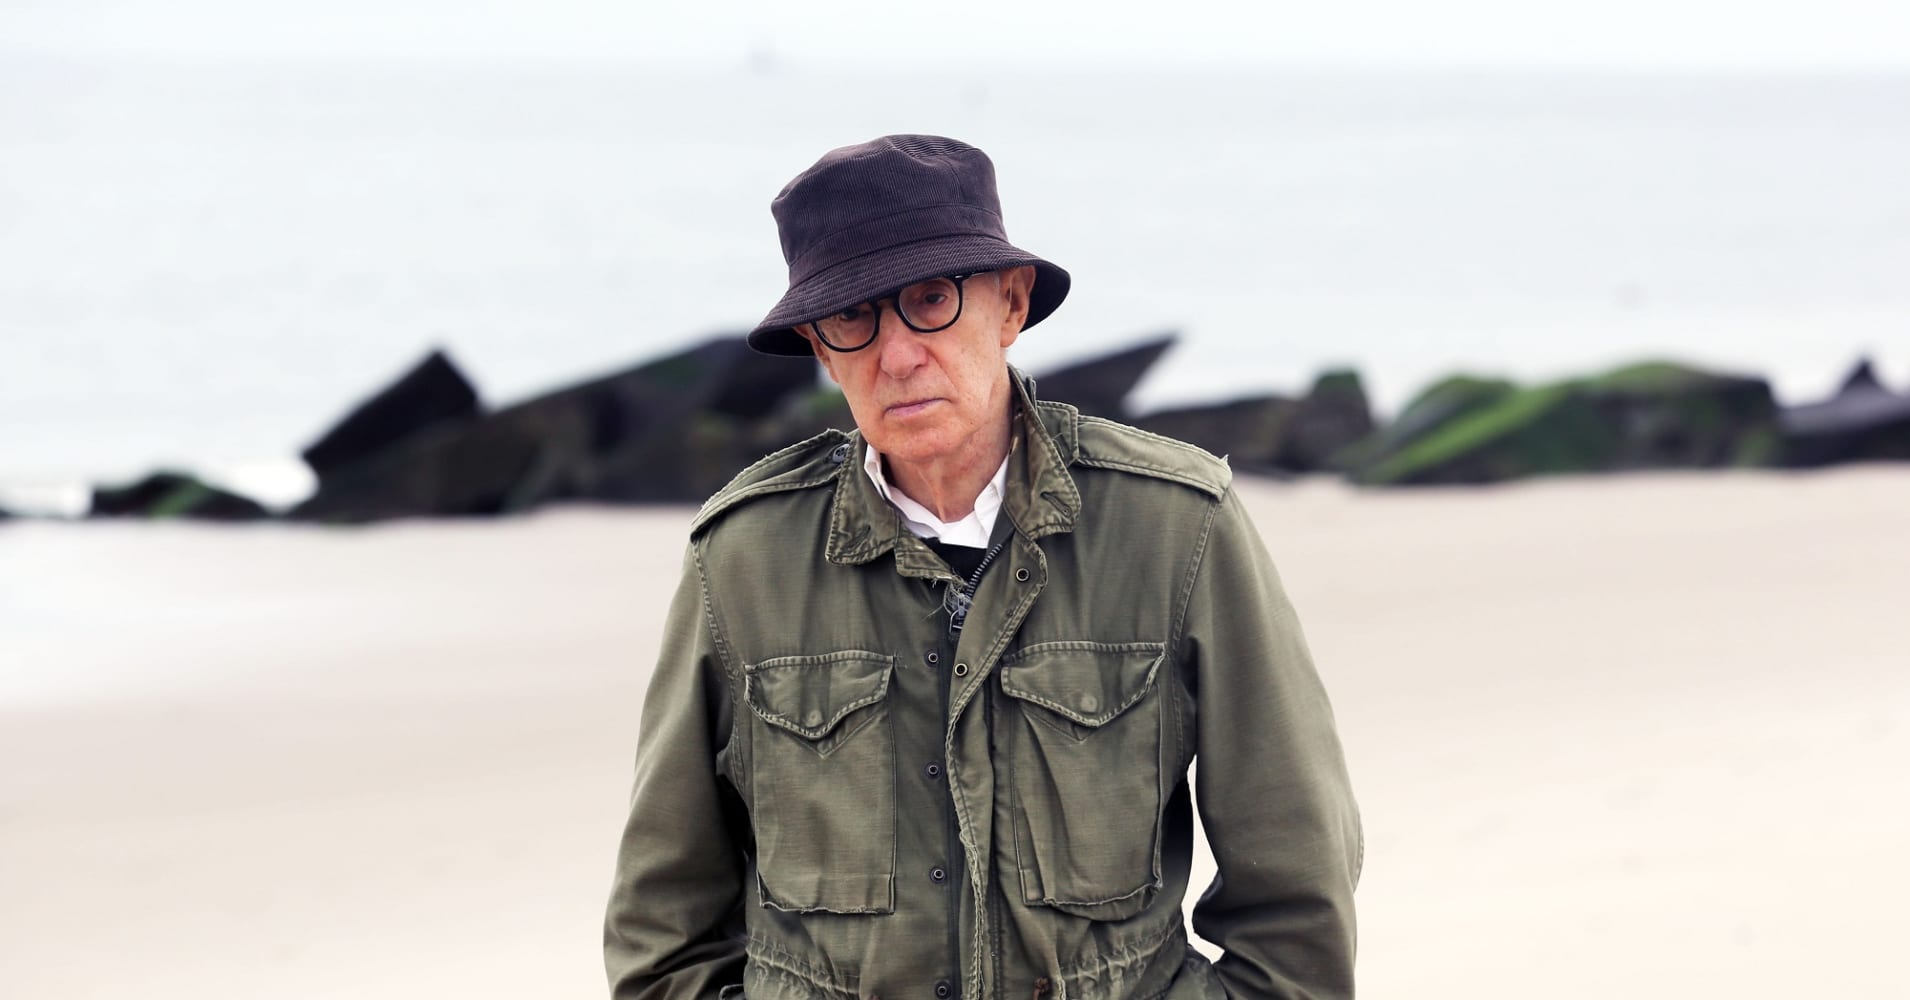 Woody Allen filming his new Fall project on September 19, 2016 in New York City.